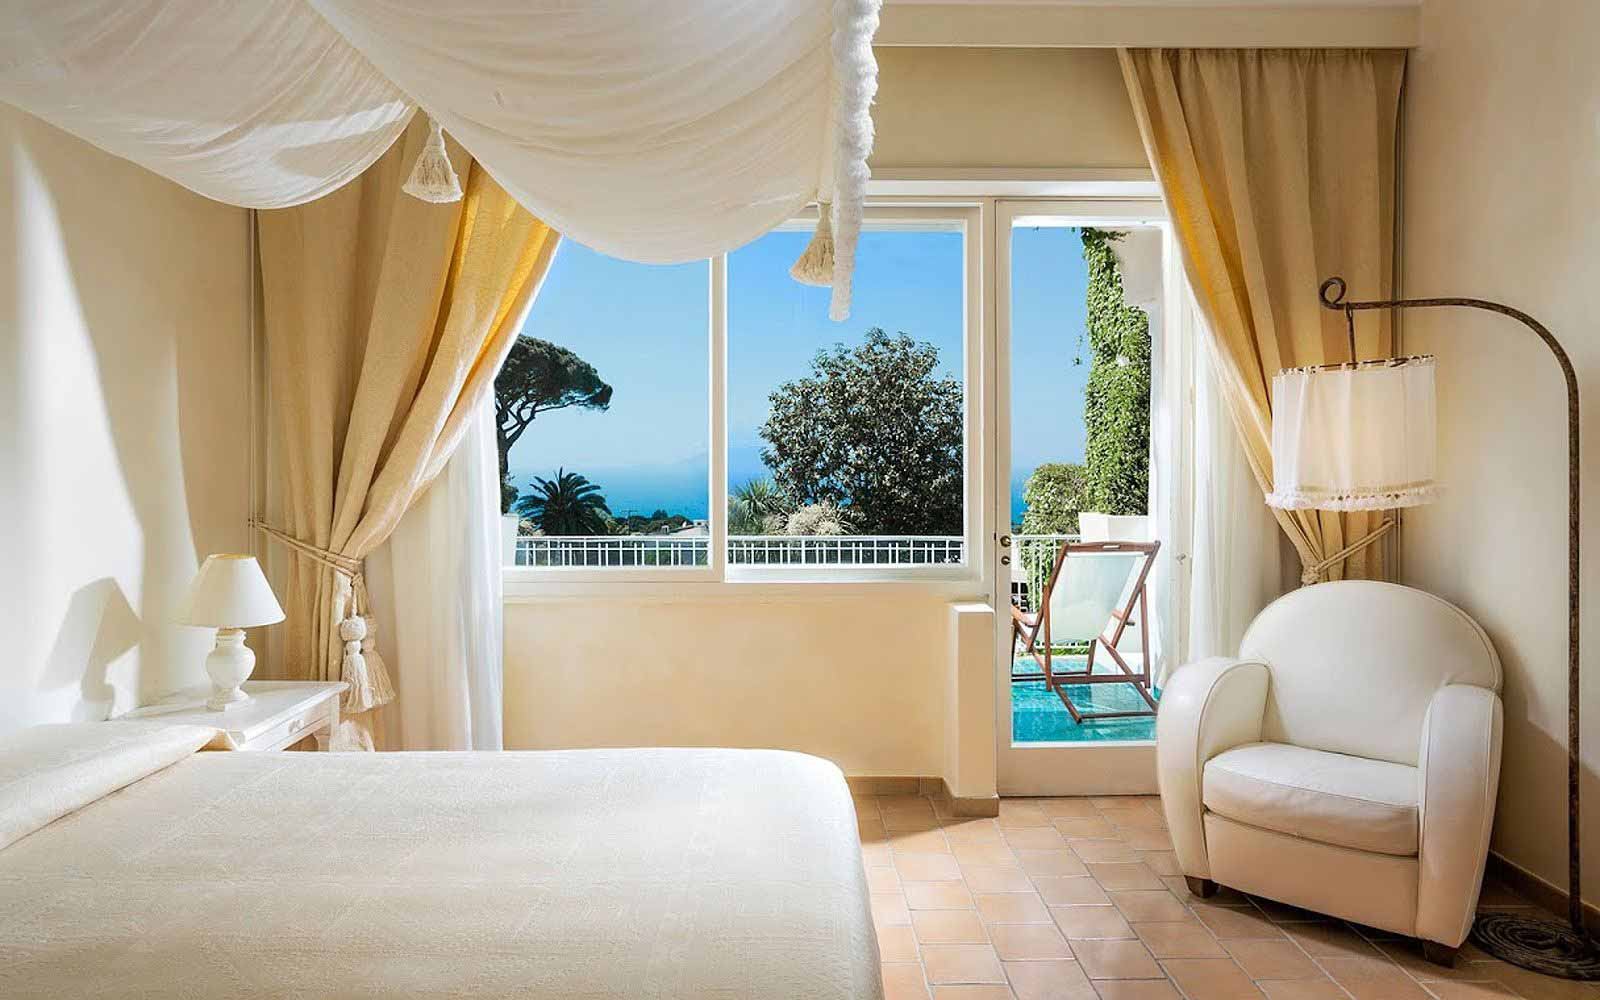 Classic Double Room sea side at Capri Palace Hotel & Spa